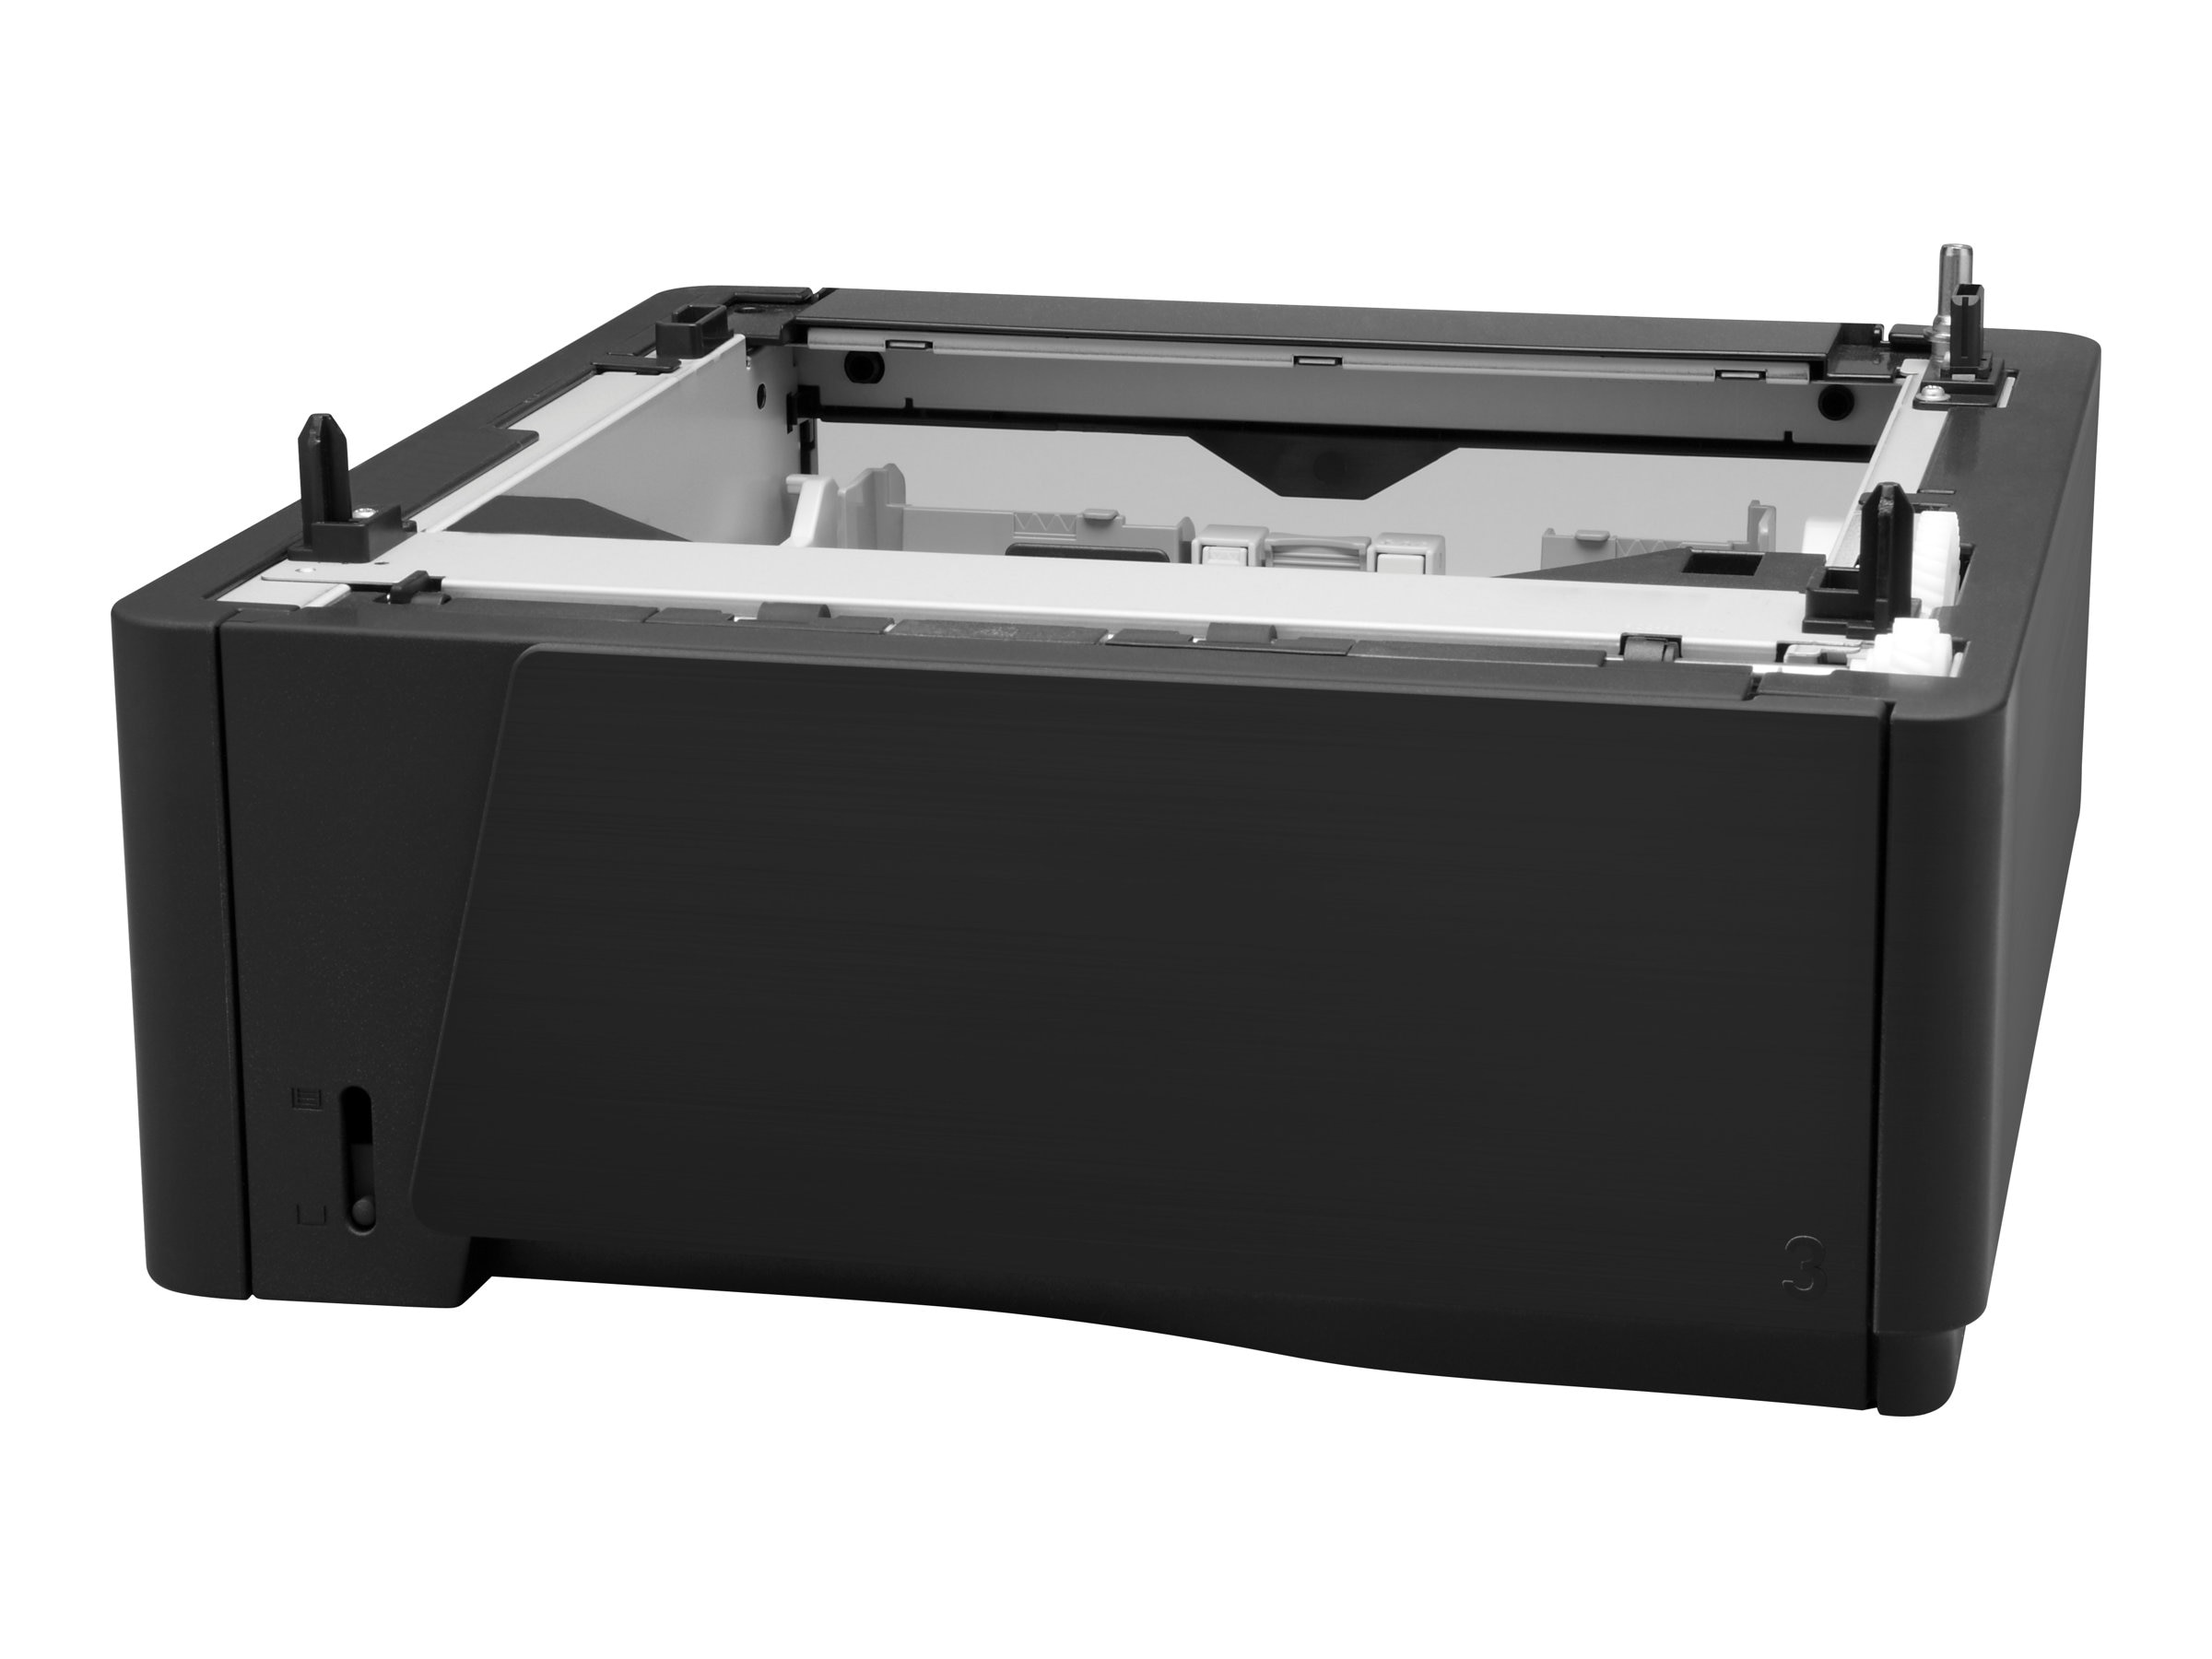 HP 500-Sheet Feeder for HP LaserJet Pro 400 M401 Series Printers, CF284A, 14248681, Printers - Input Trays/Feeders